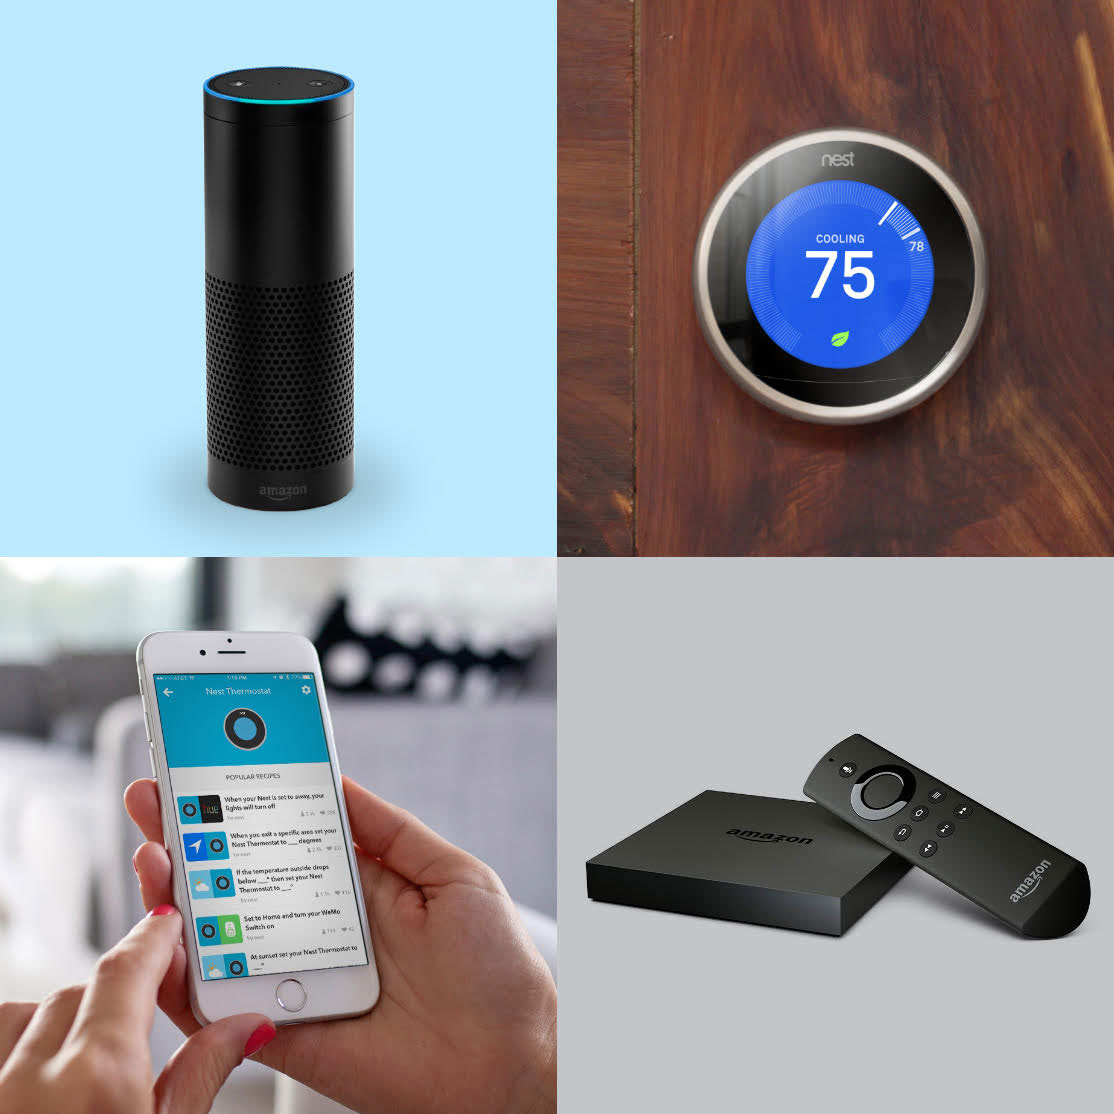 nest-alexa-working-together